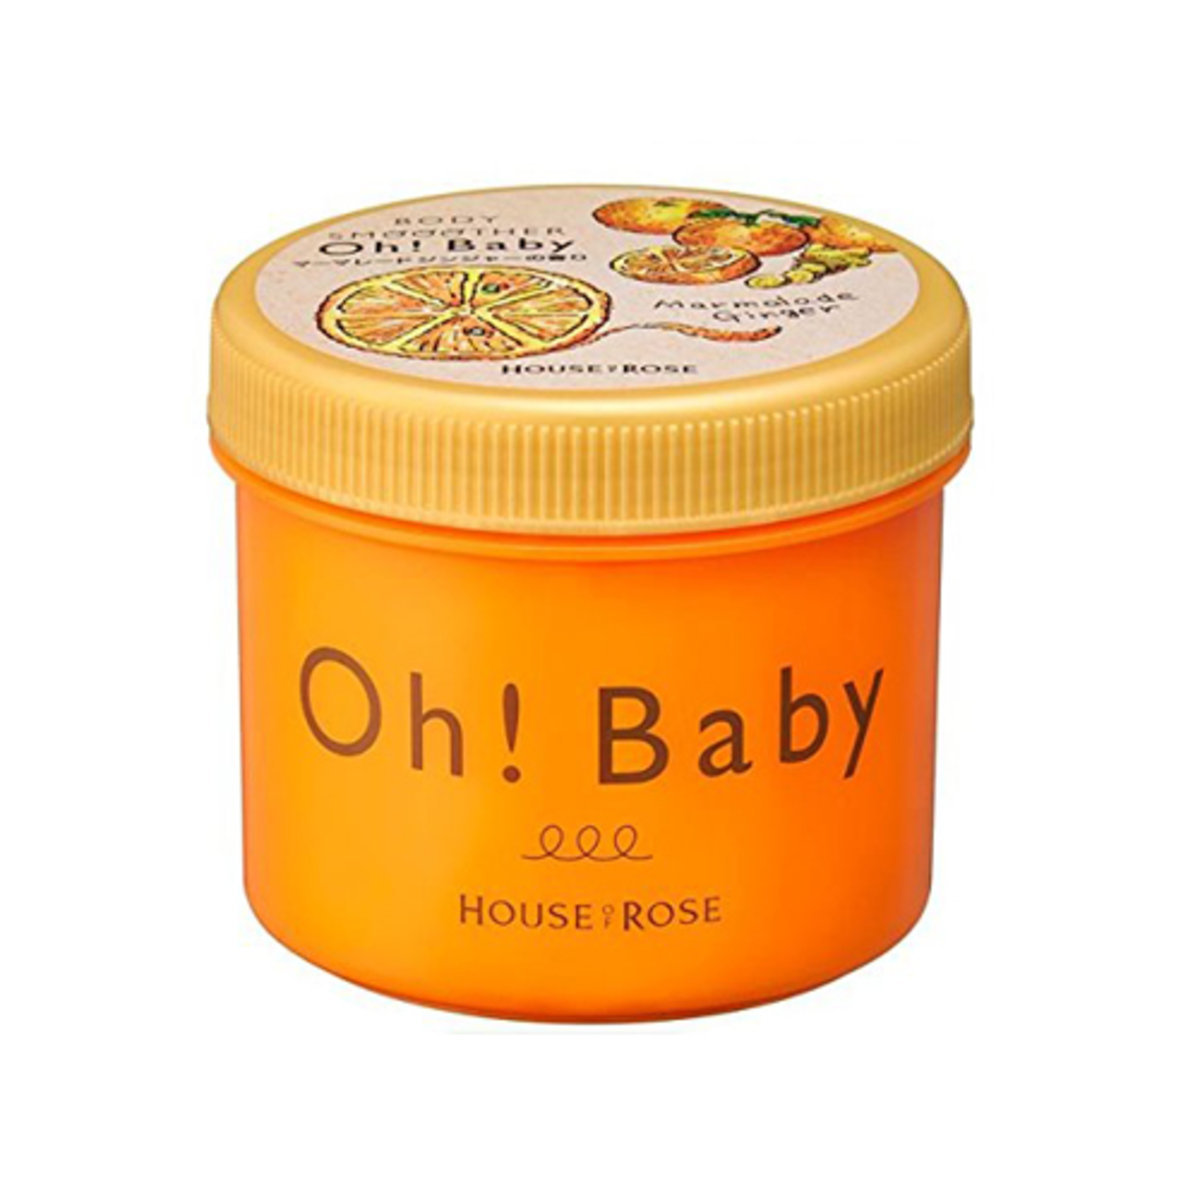 Oh! Baby Marmalade Ginger Body Smoother 350g [Parallel Import] (4977673124462)